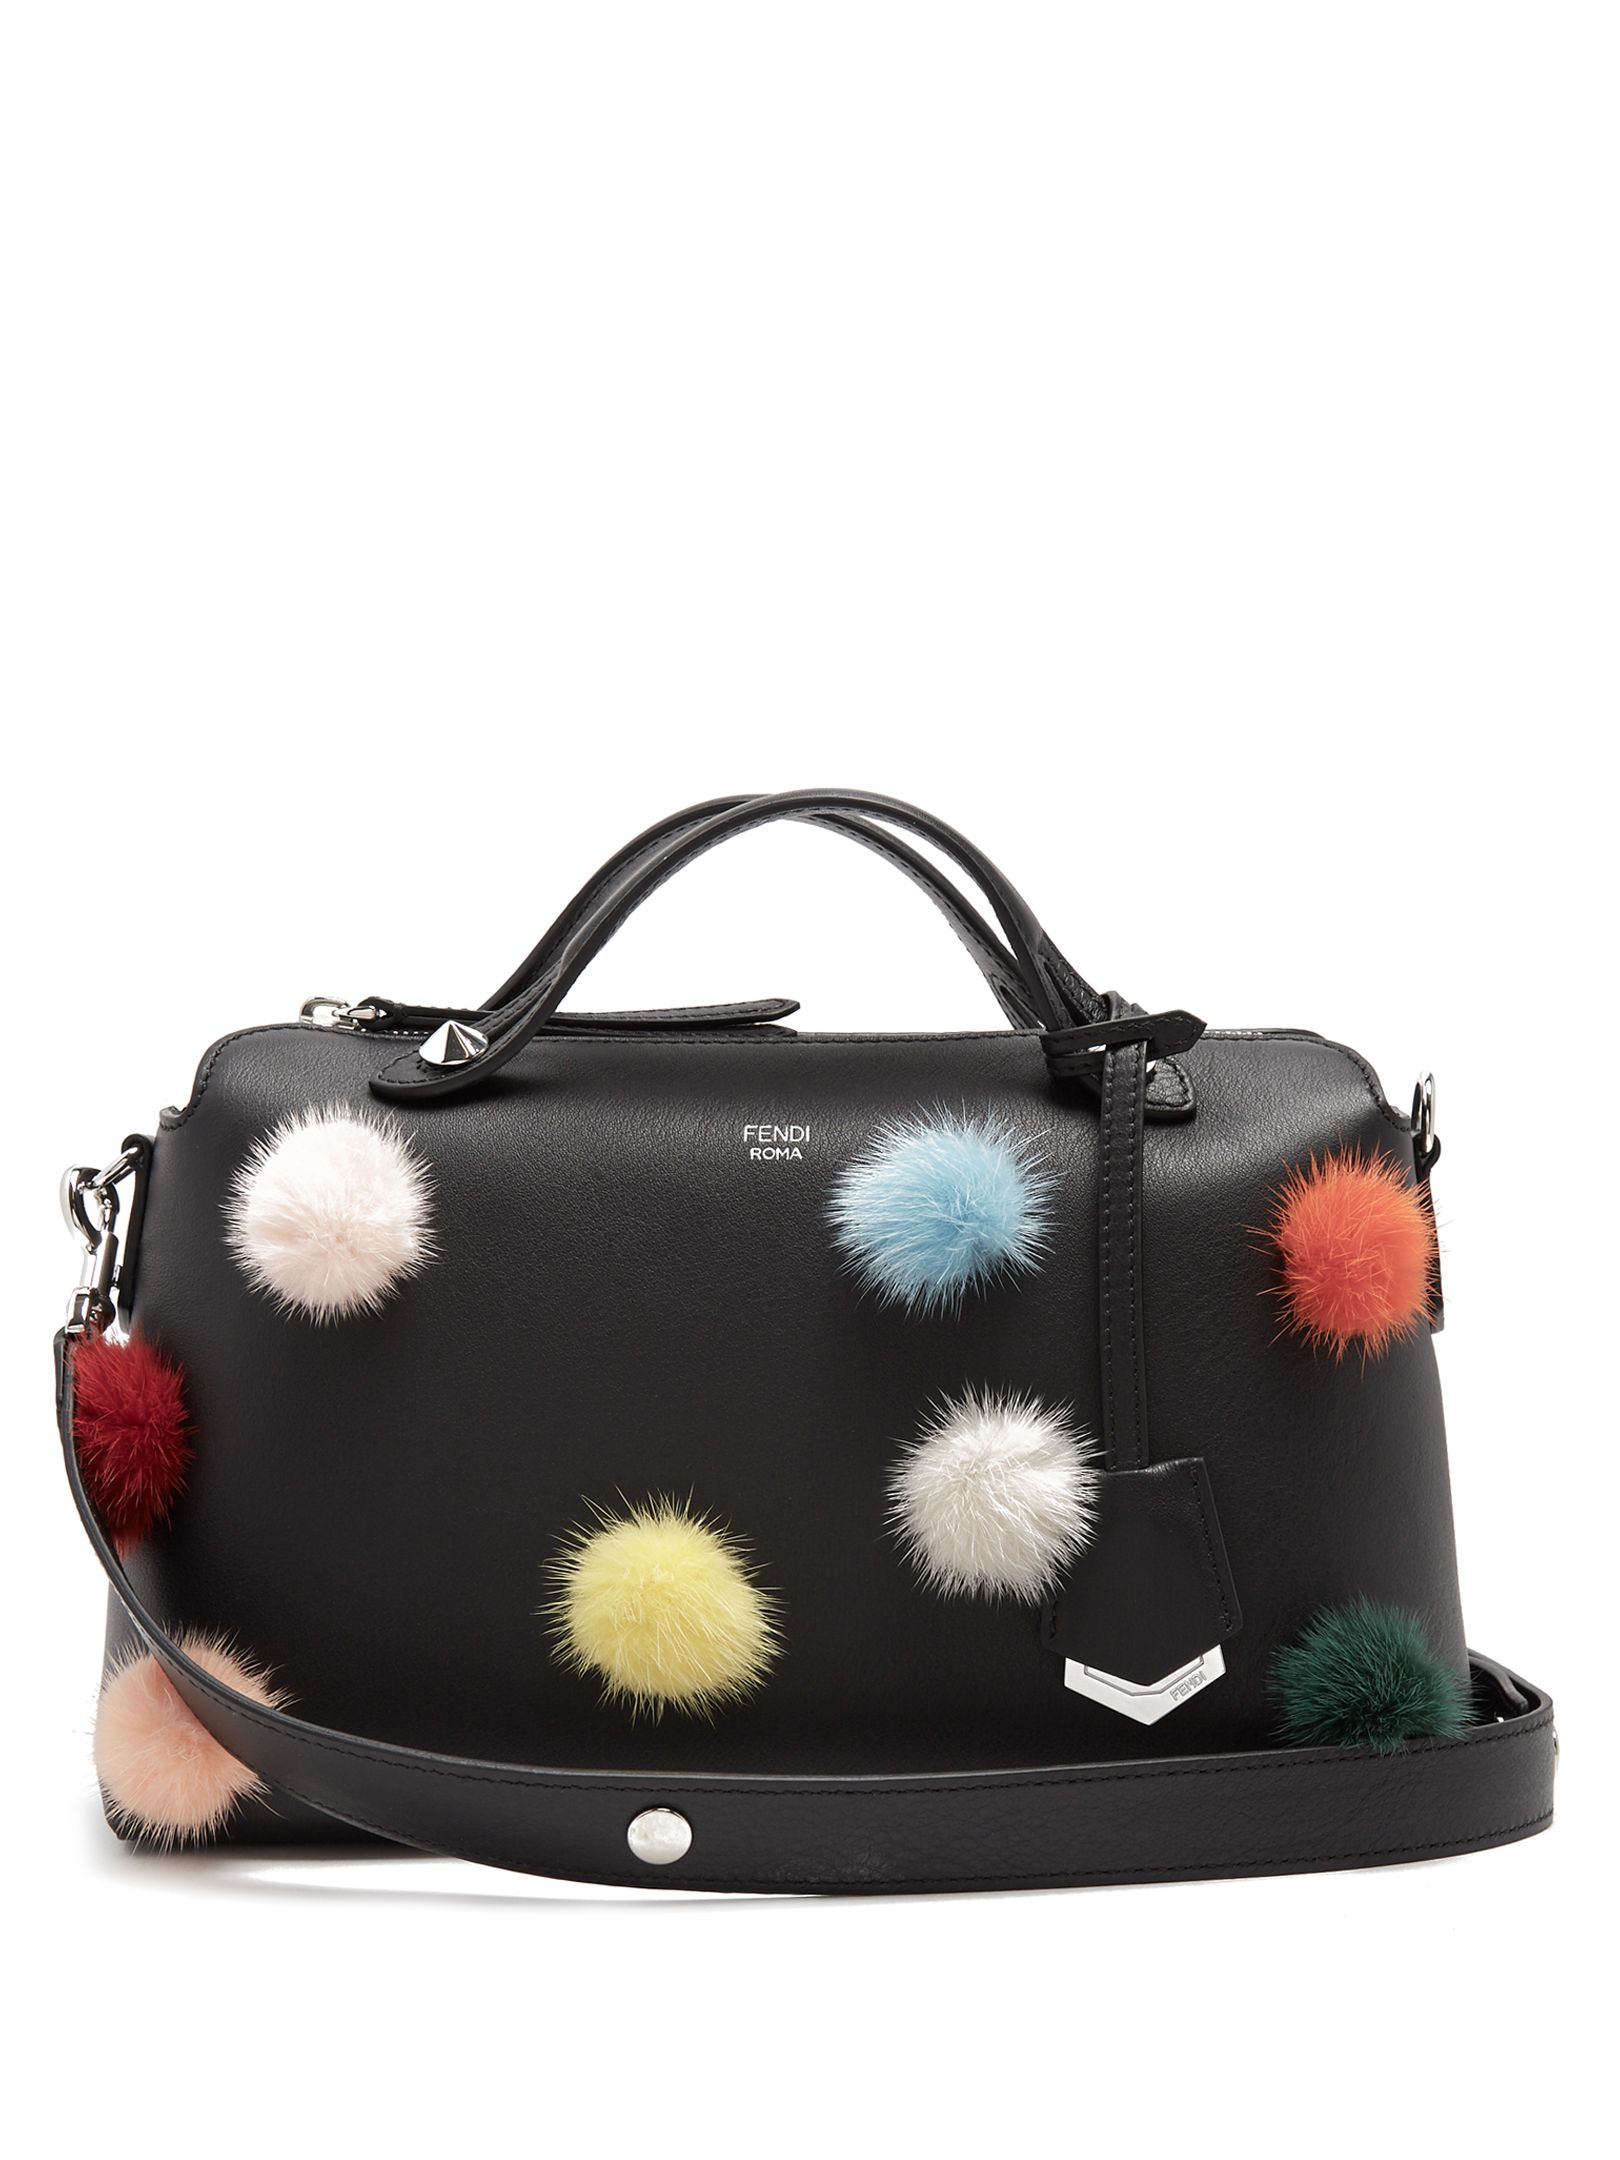 b300c9188ff ... where to buy fendi by the way fur pompom embellished leather bag. fendi  bags 35c42 ...